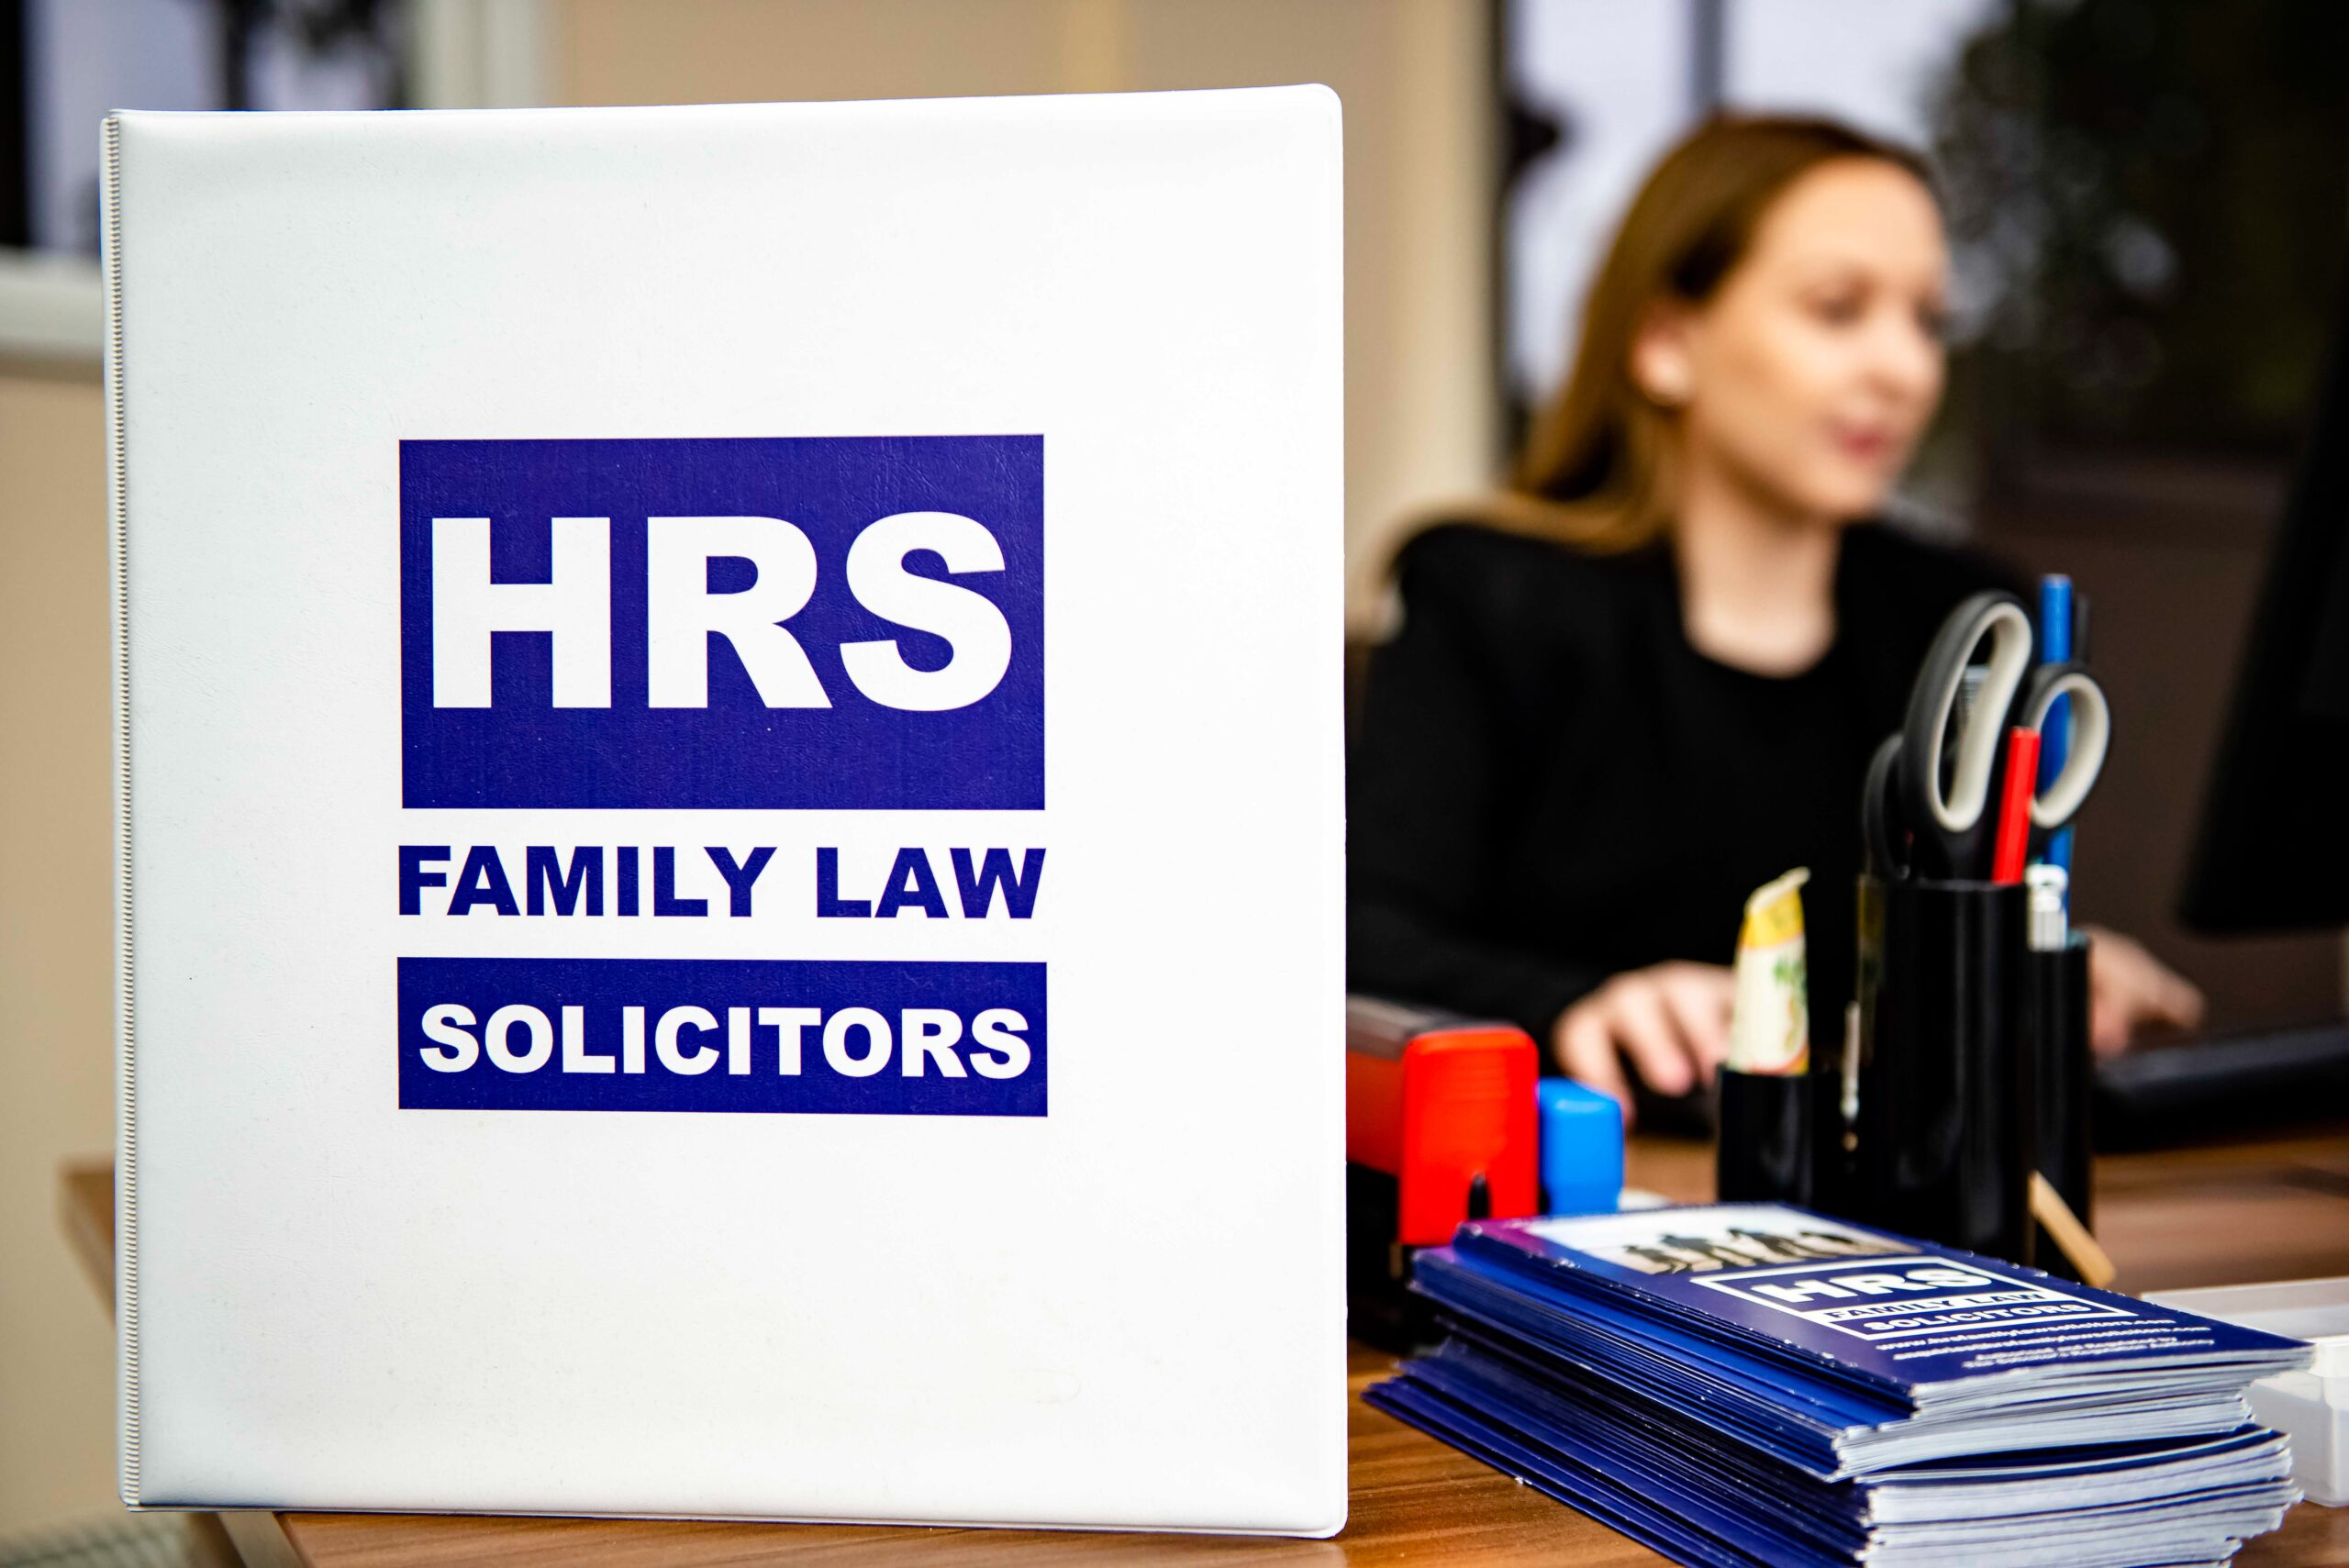 Kings Heath Solicitors